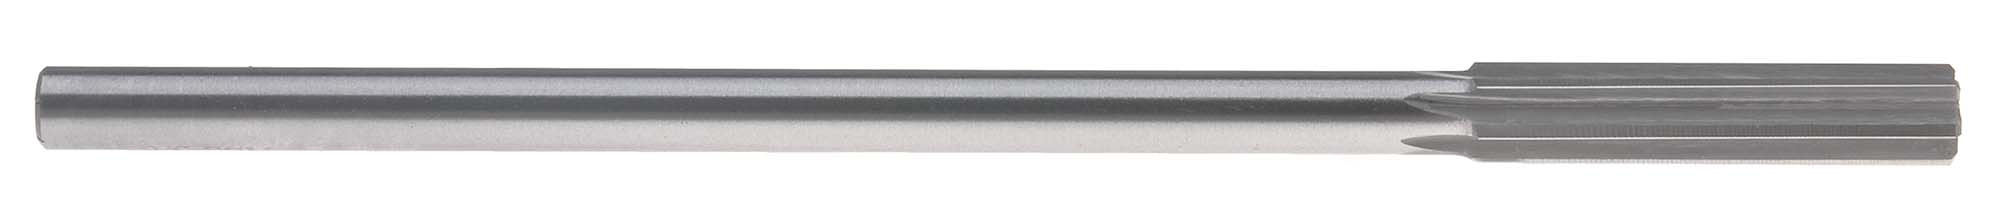 1-3/16 Straight Shank Chucking Reamer, Straight Flute, High Speed Steel